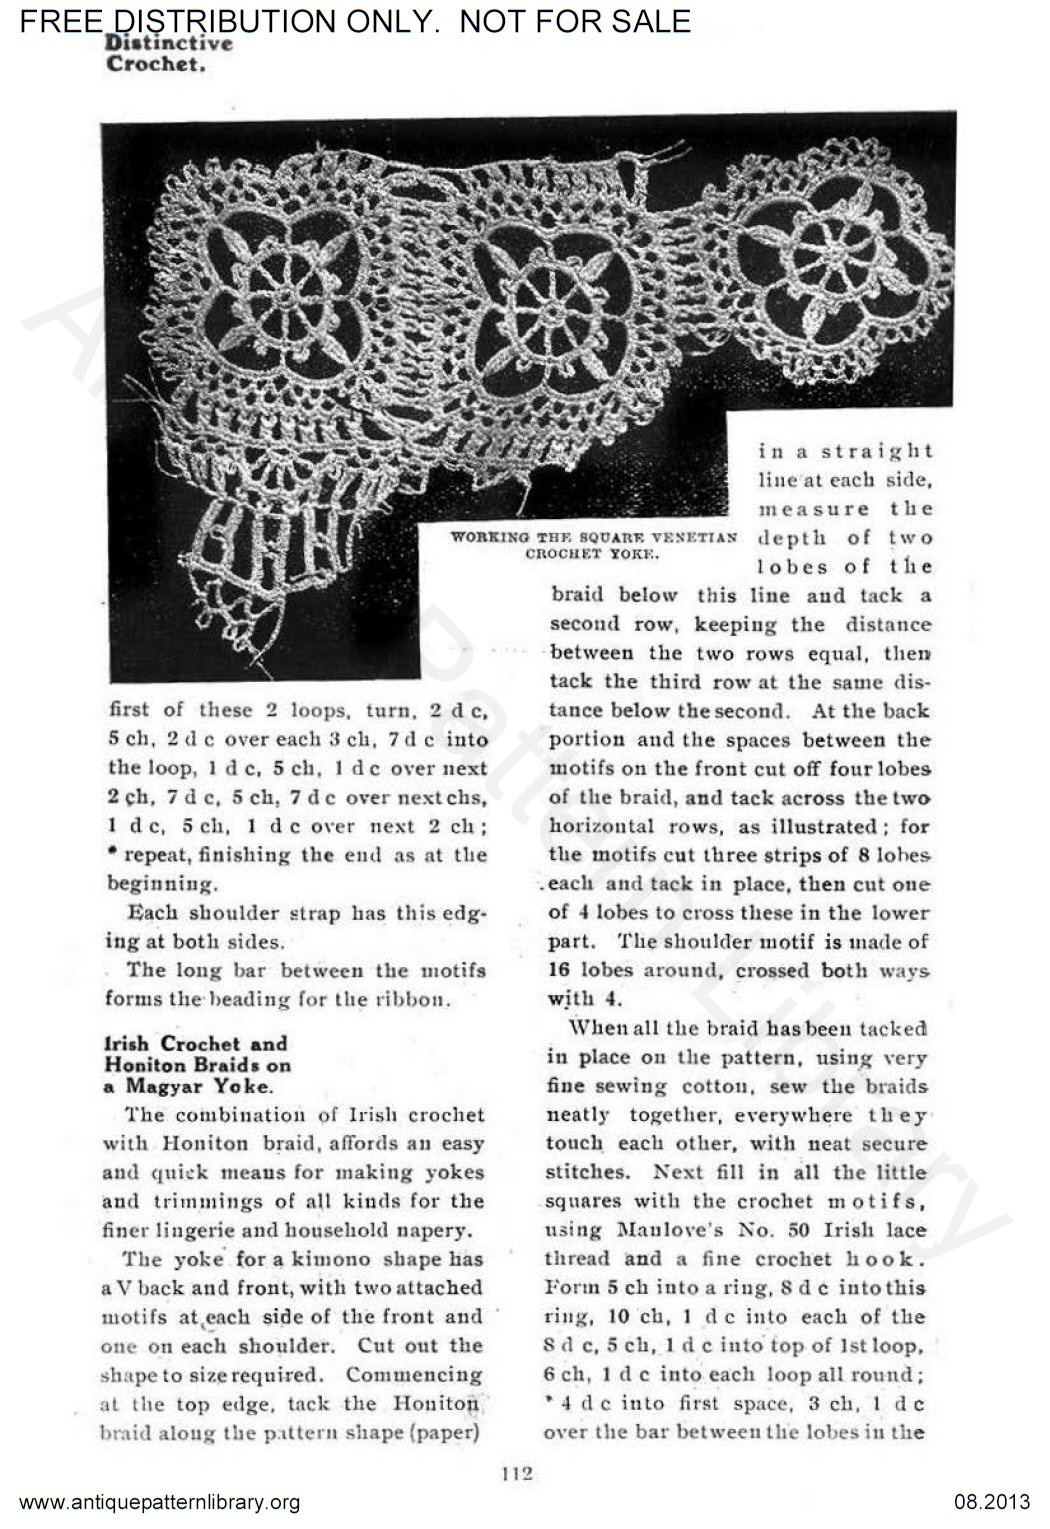 6-EN004 Distinctive Crochet,